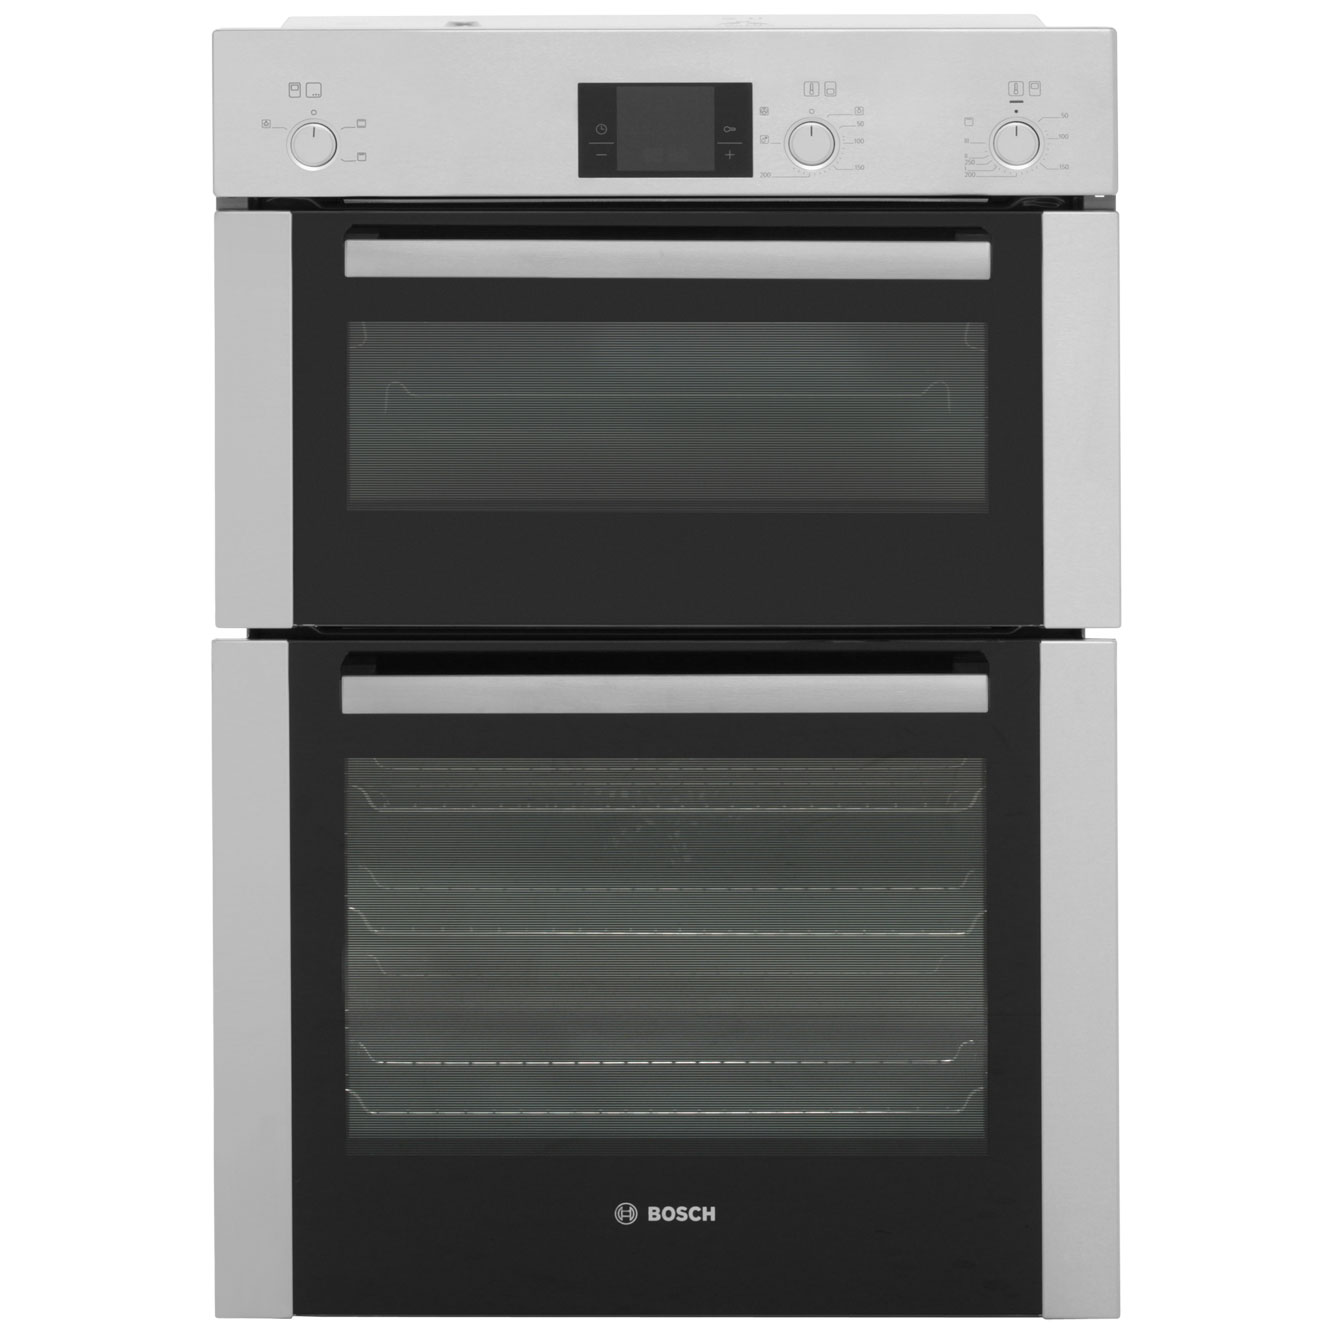 Bosch double oven reviews